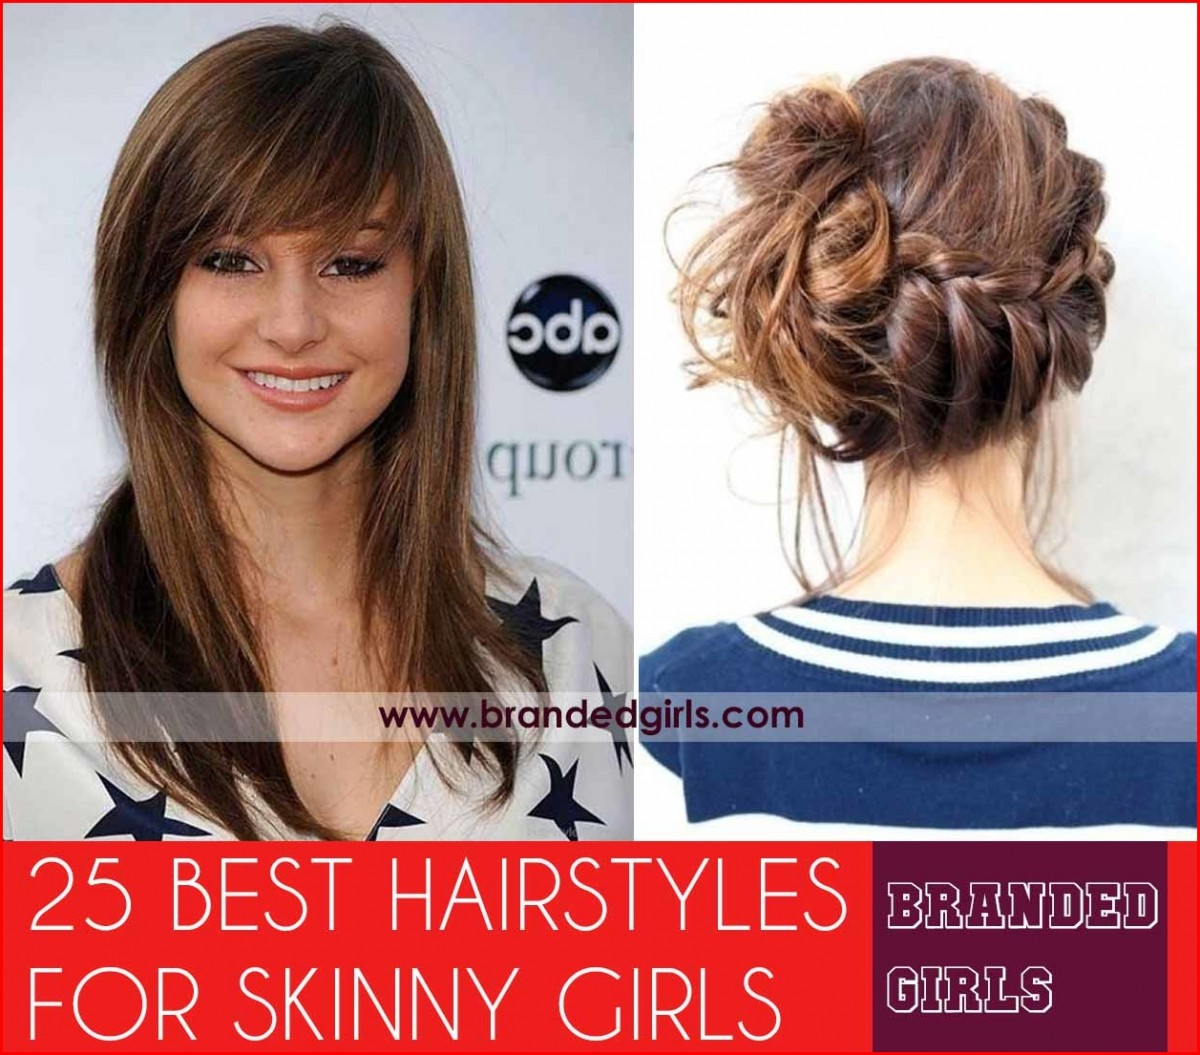 the most suitable haircuts and hairstyles for girls